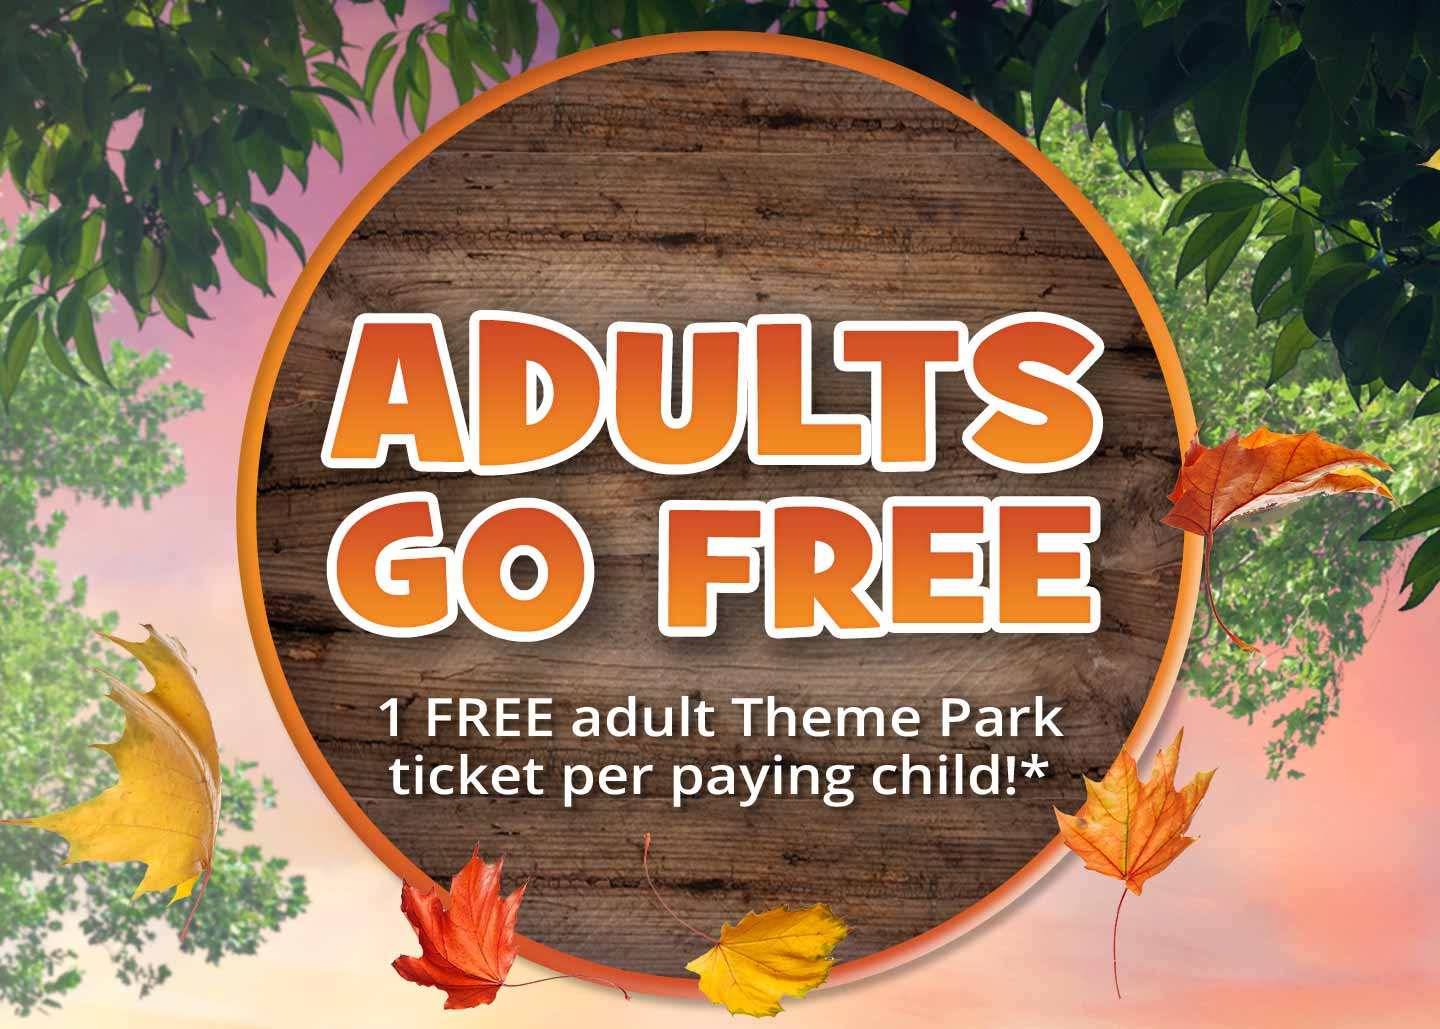 Adults Go FREE offer at Chessington